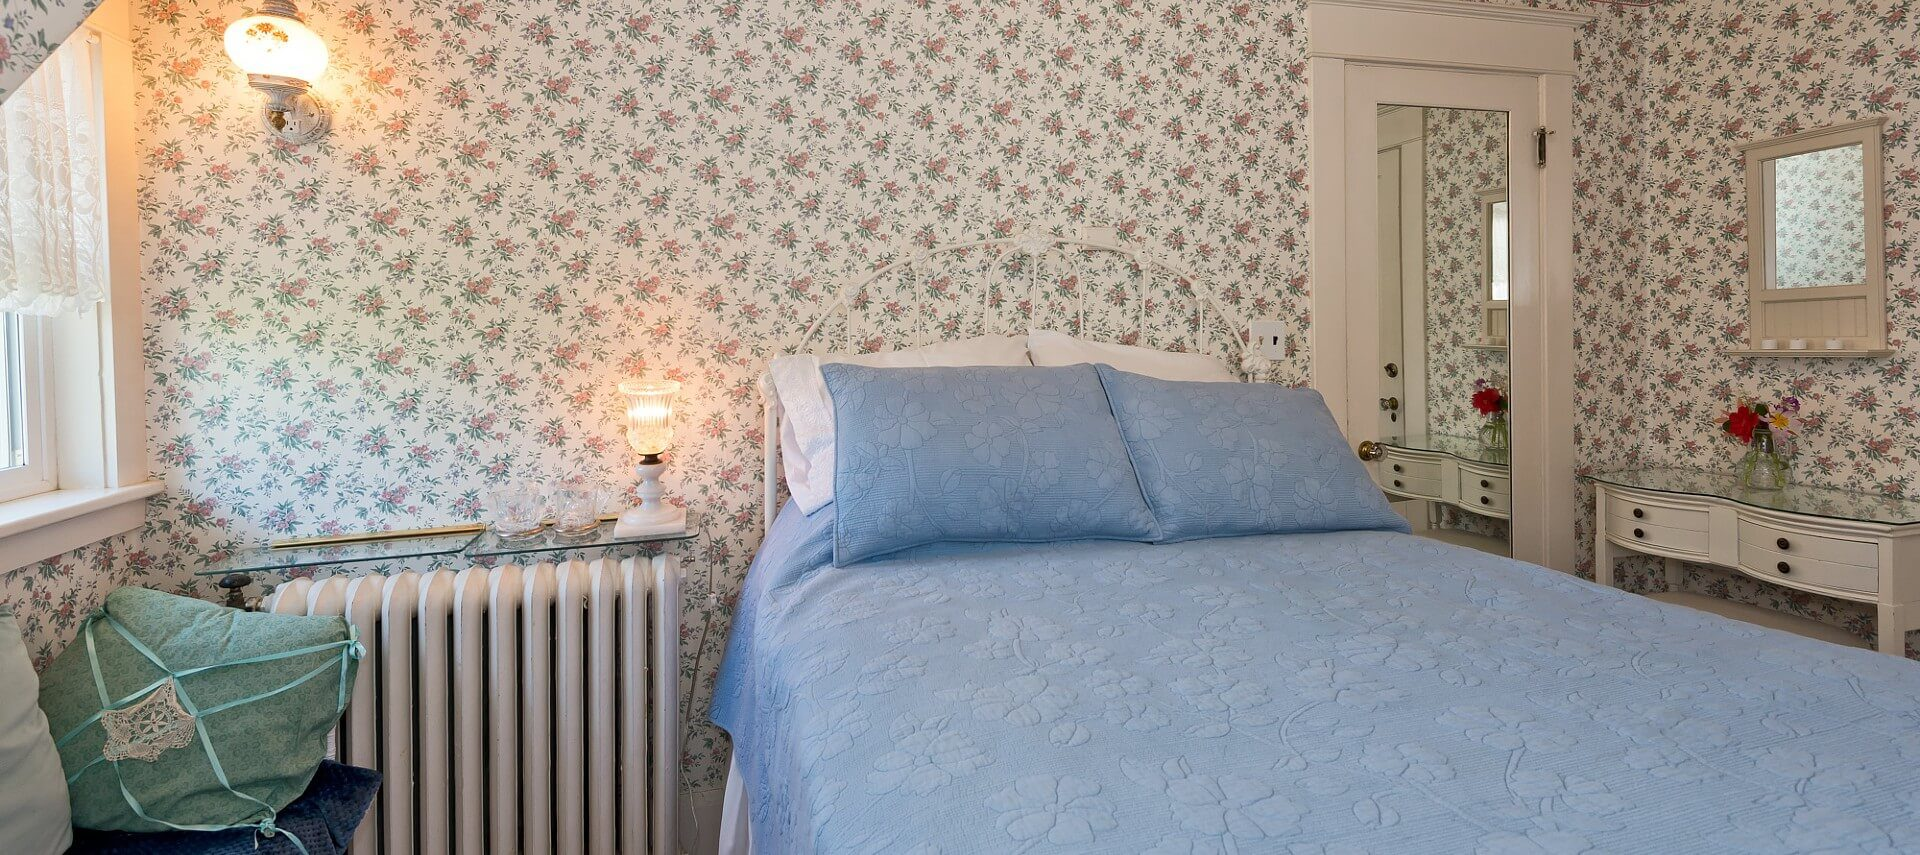 Guest room with flowered wallpaper, bright window and double bed with blue quilt